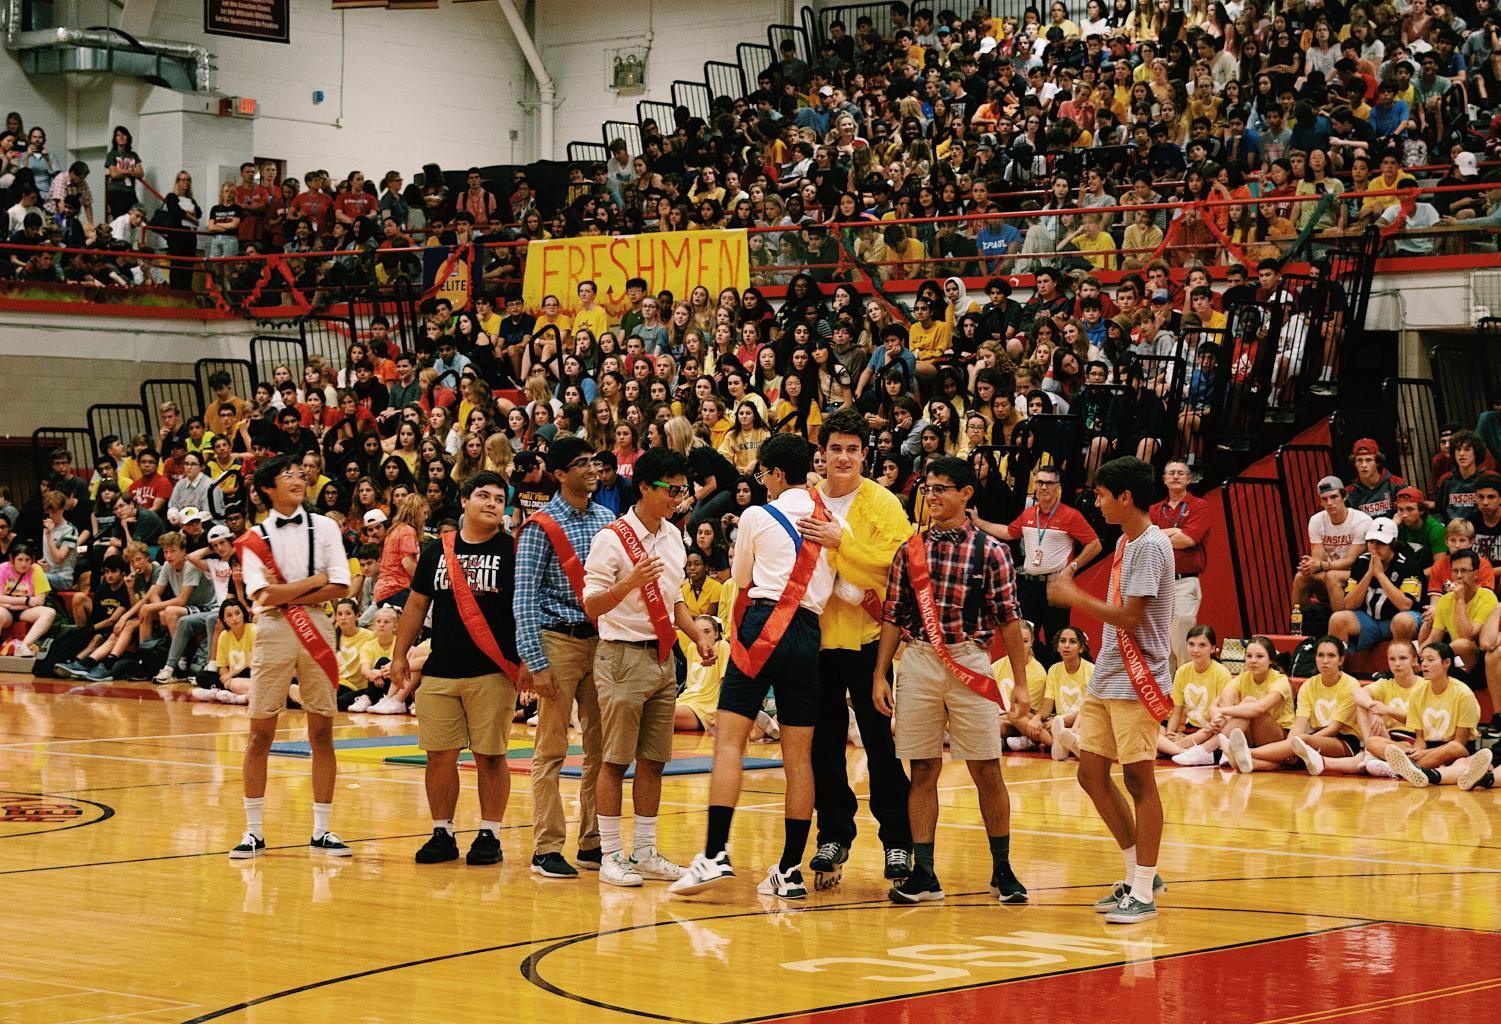 On+Friday%2C+Sept.+20%2C+the+homecoming+court+nominations+assembly+took+place+at+the+school+gymnasium.+The+nominated+seniors+hugged+each+other+down+a+line+to+congratulate+each+other.